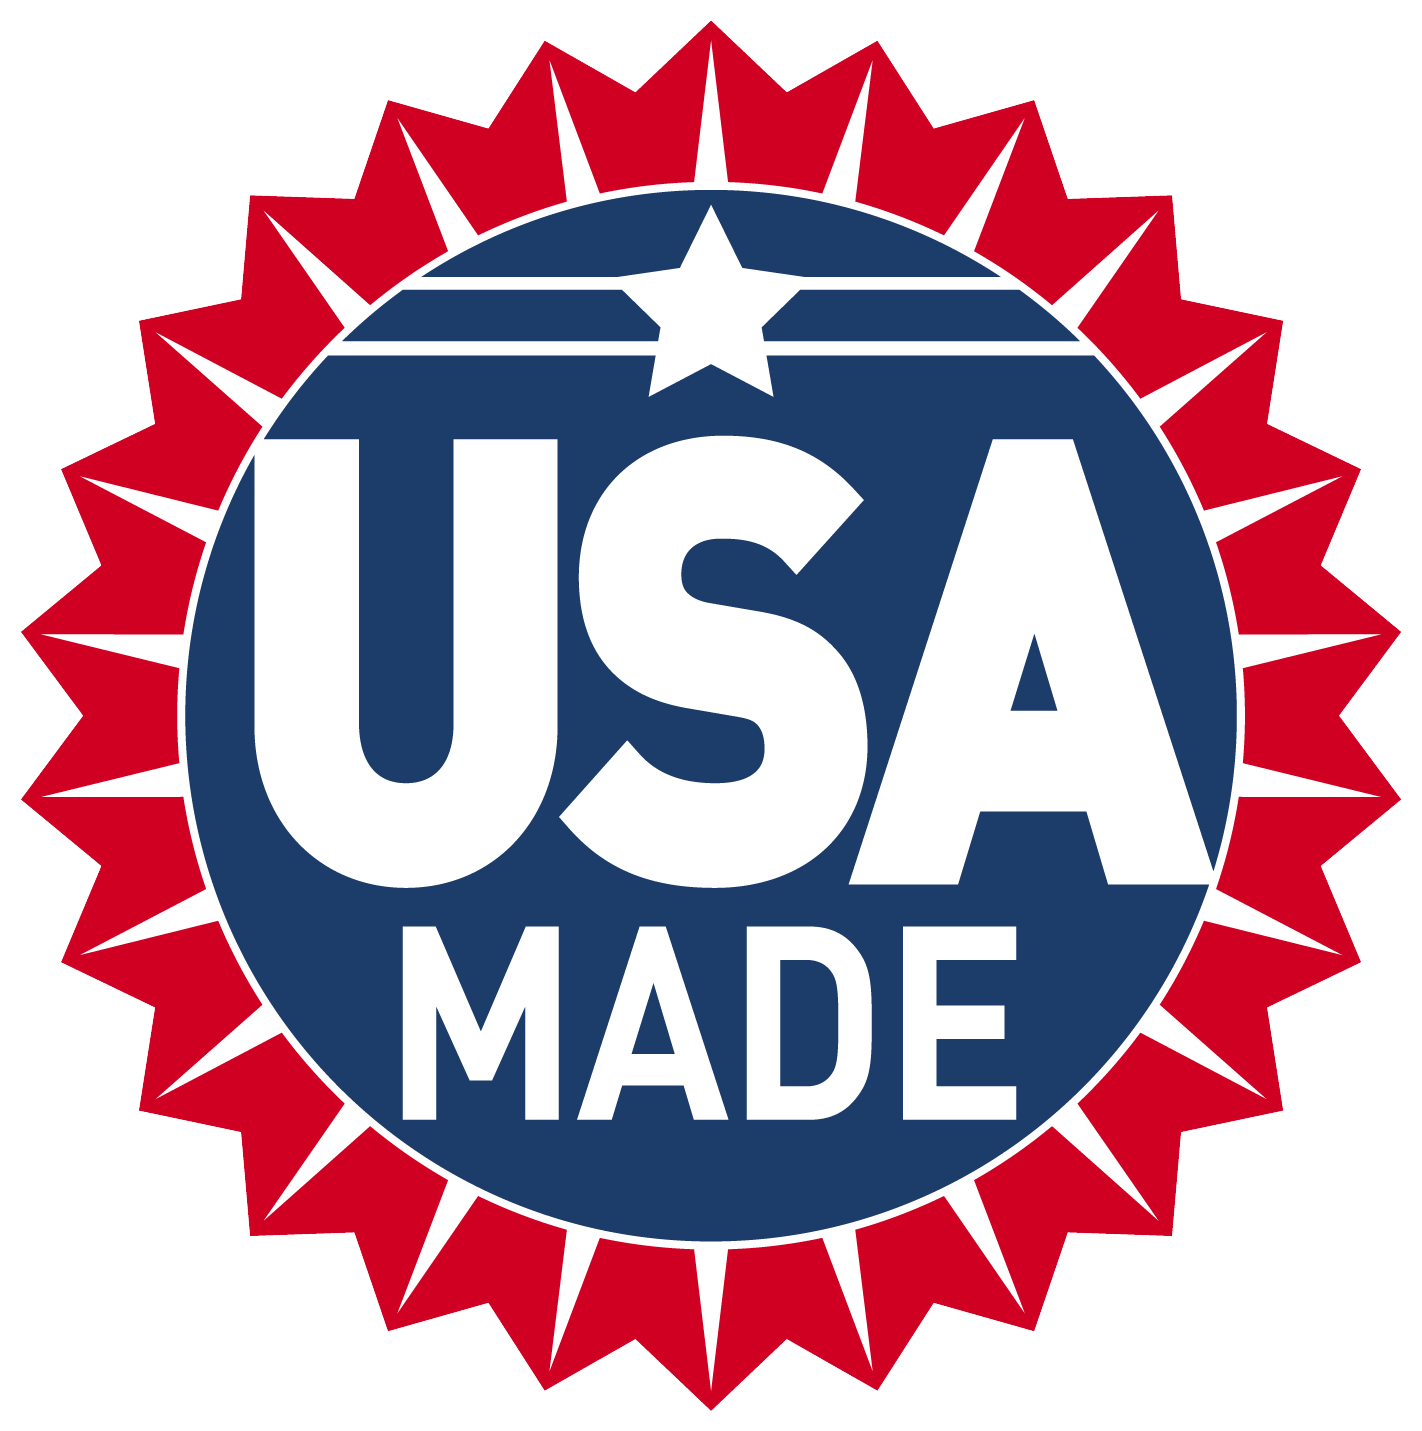 Intellistop is made in the USA